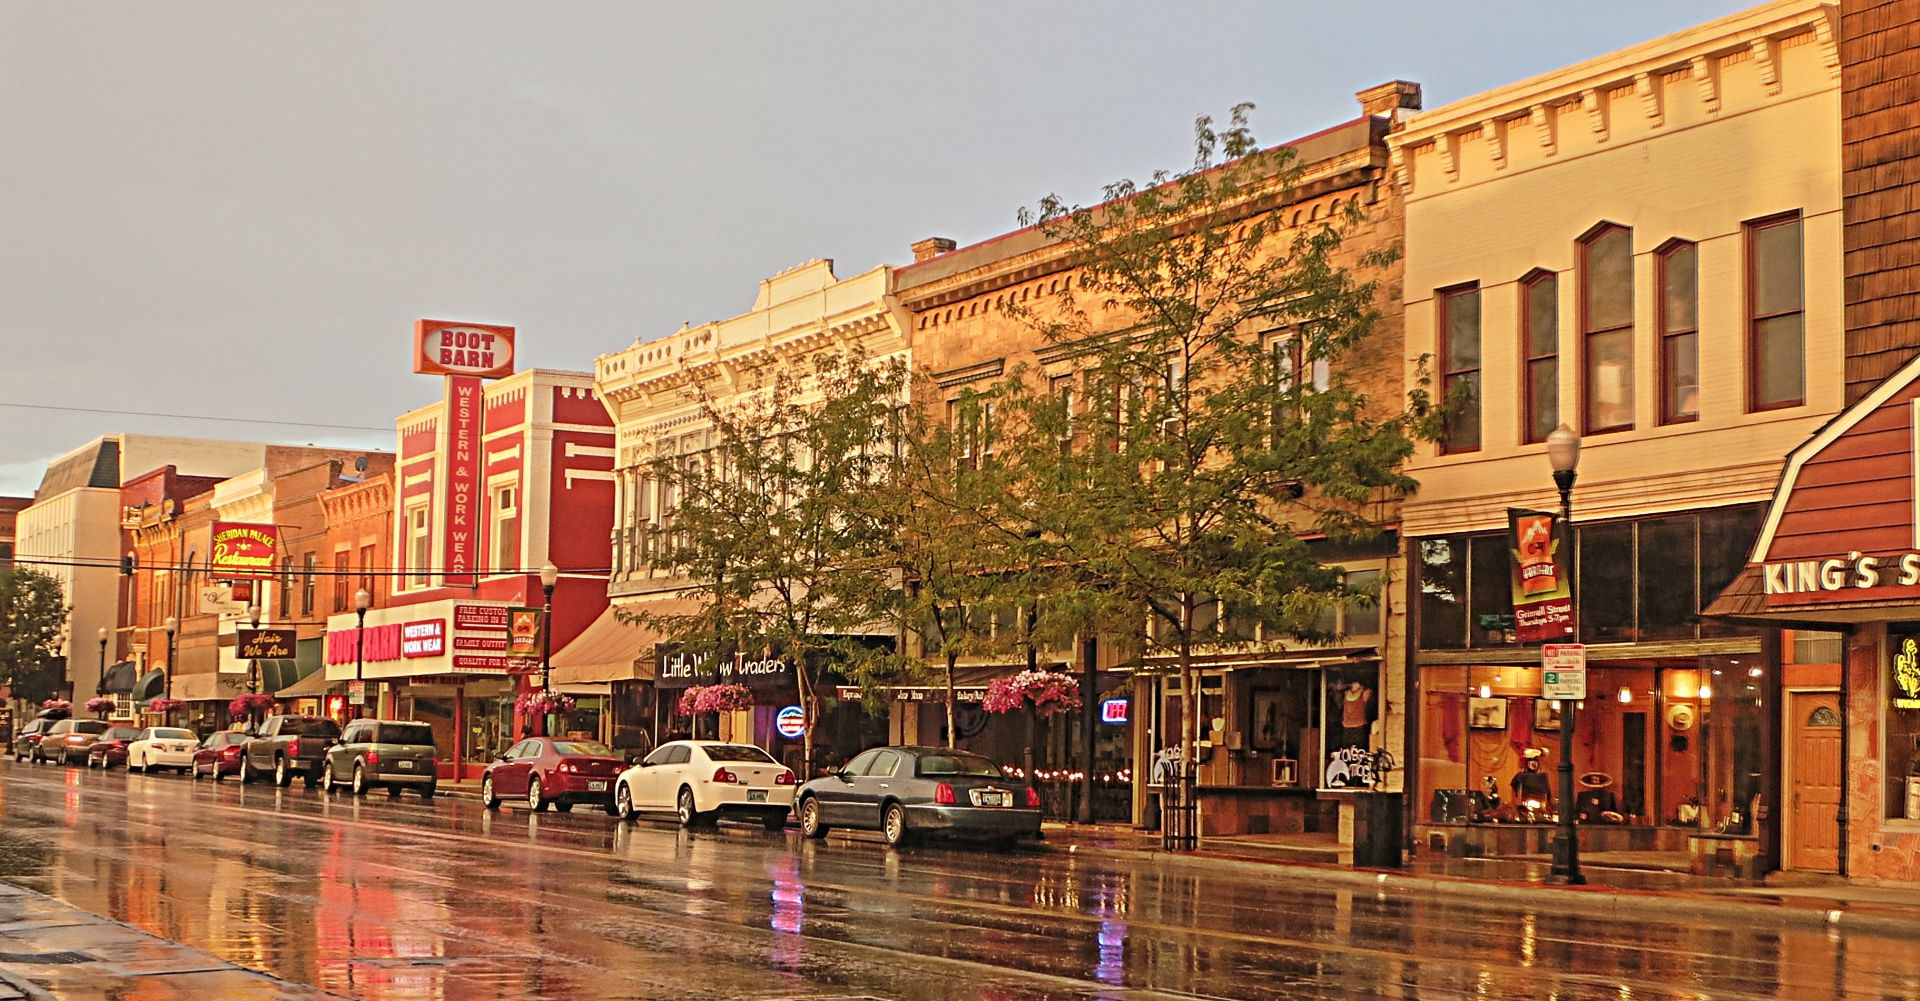 USA Today: Idyllic America: Picturesque town in Wyoming is ...